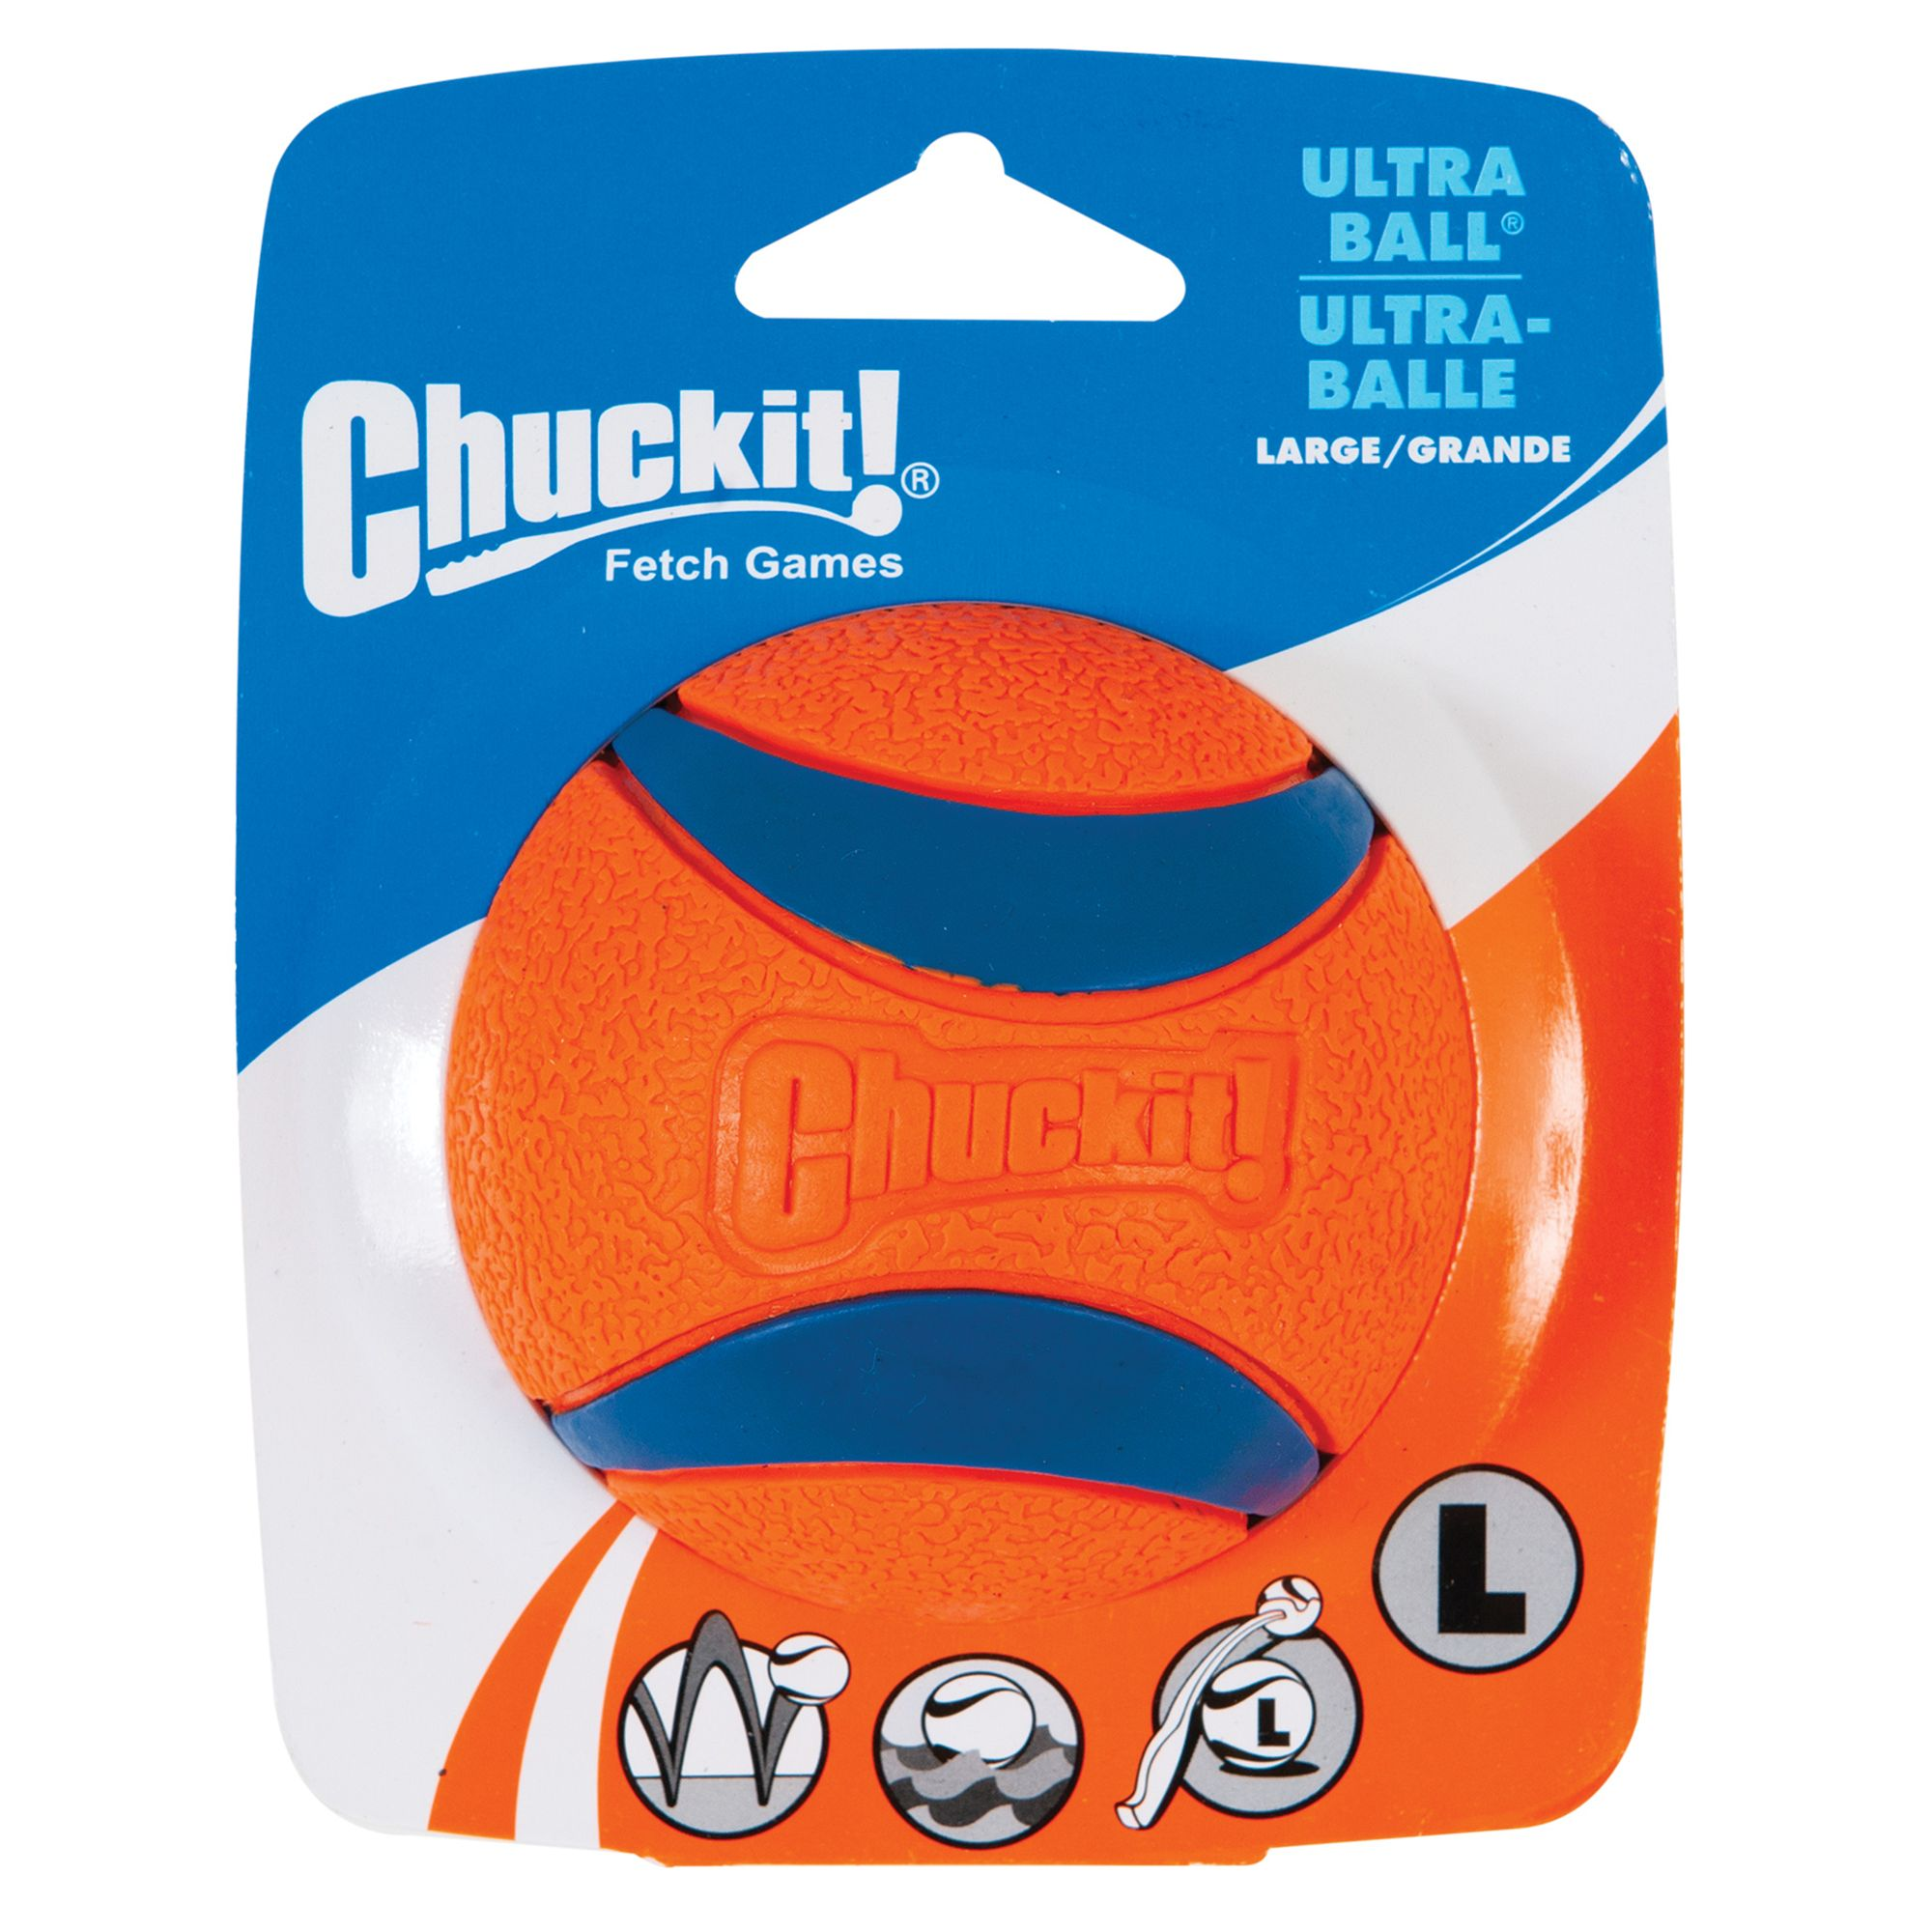 Chuckit! Ultra Ball Set Dog Toy size: Large, Multi-Color